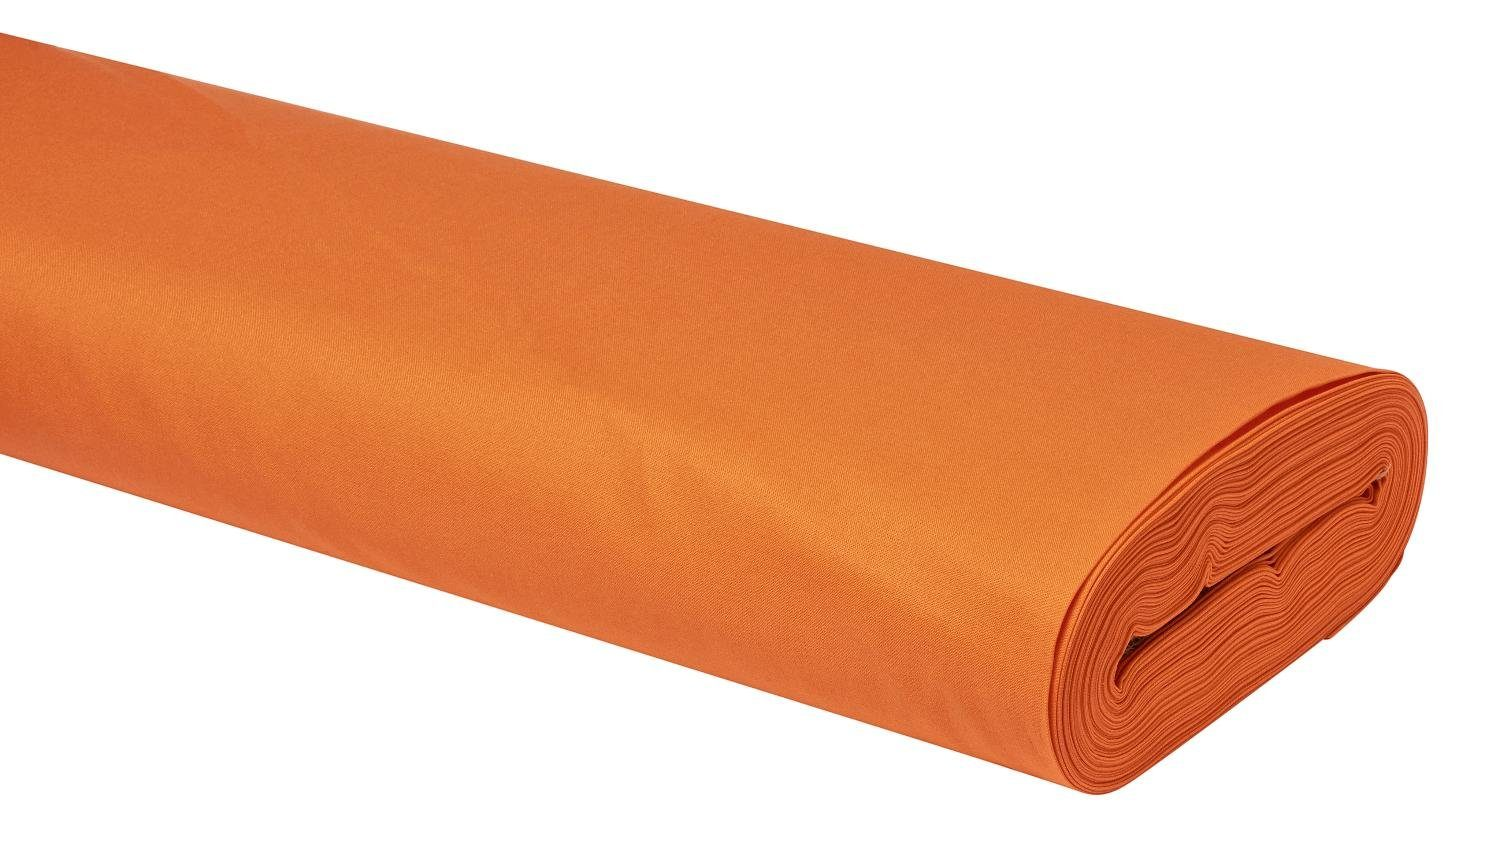 Meterware Uni-Baumwollstoff, 147cm, Orange